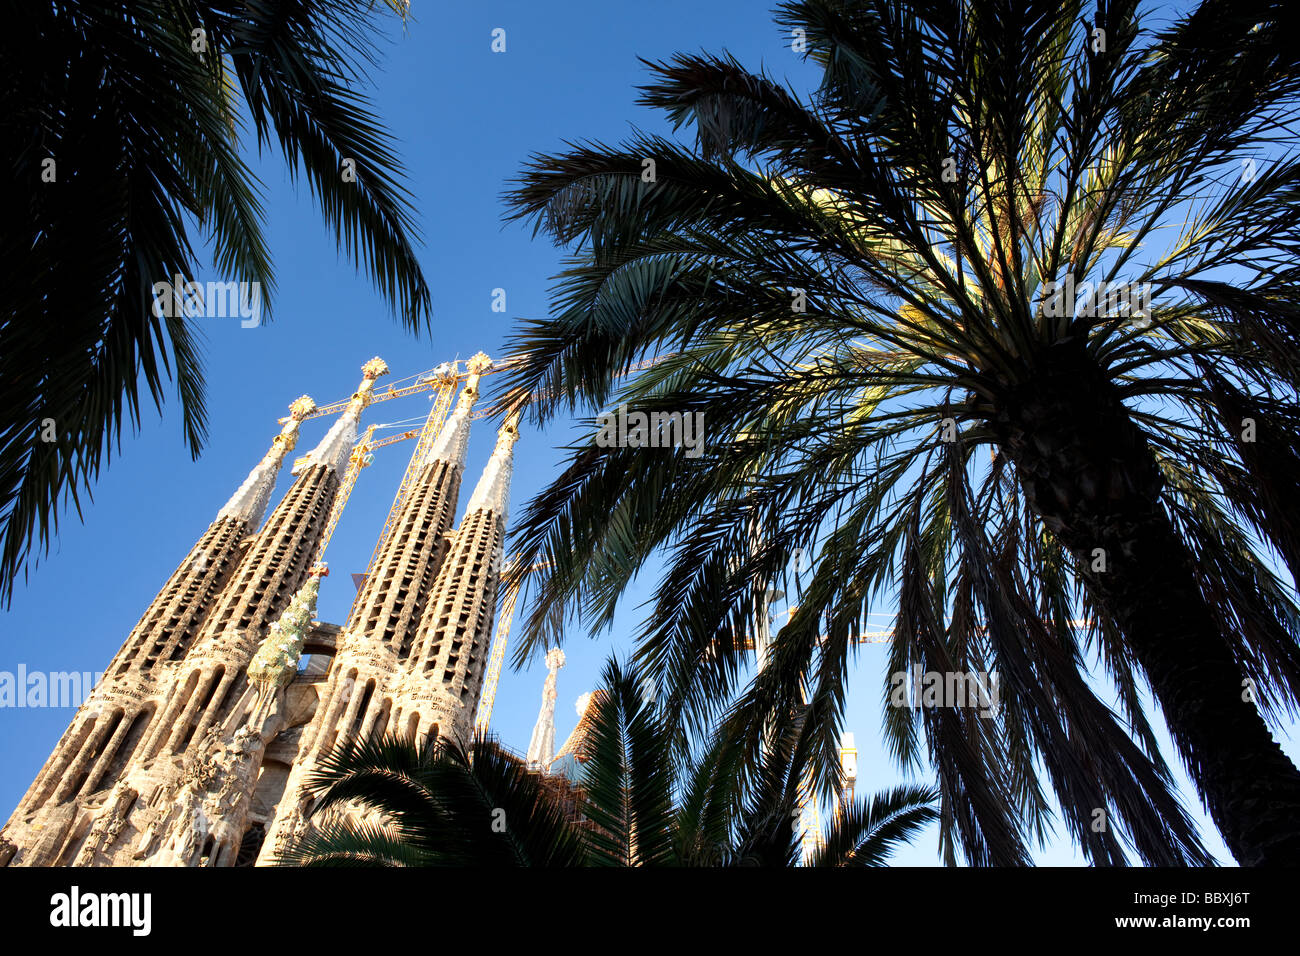 Sagrada Familia, Barcelone, Espagne Photo Stock